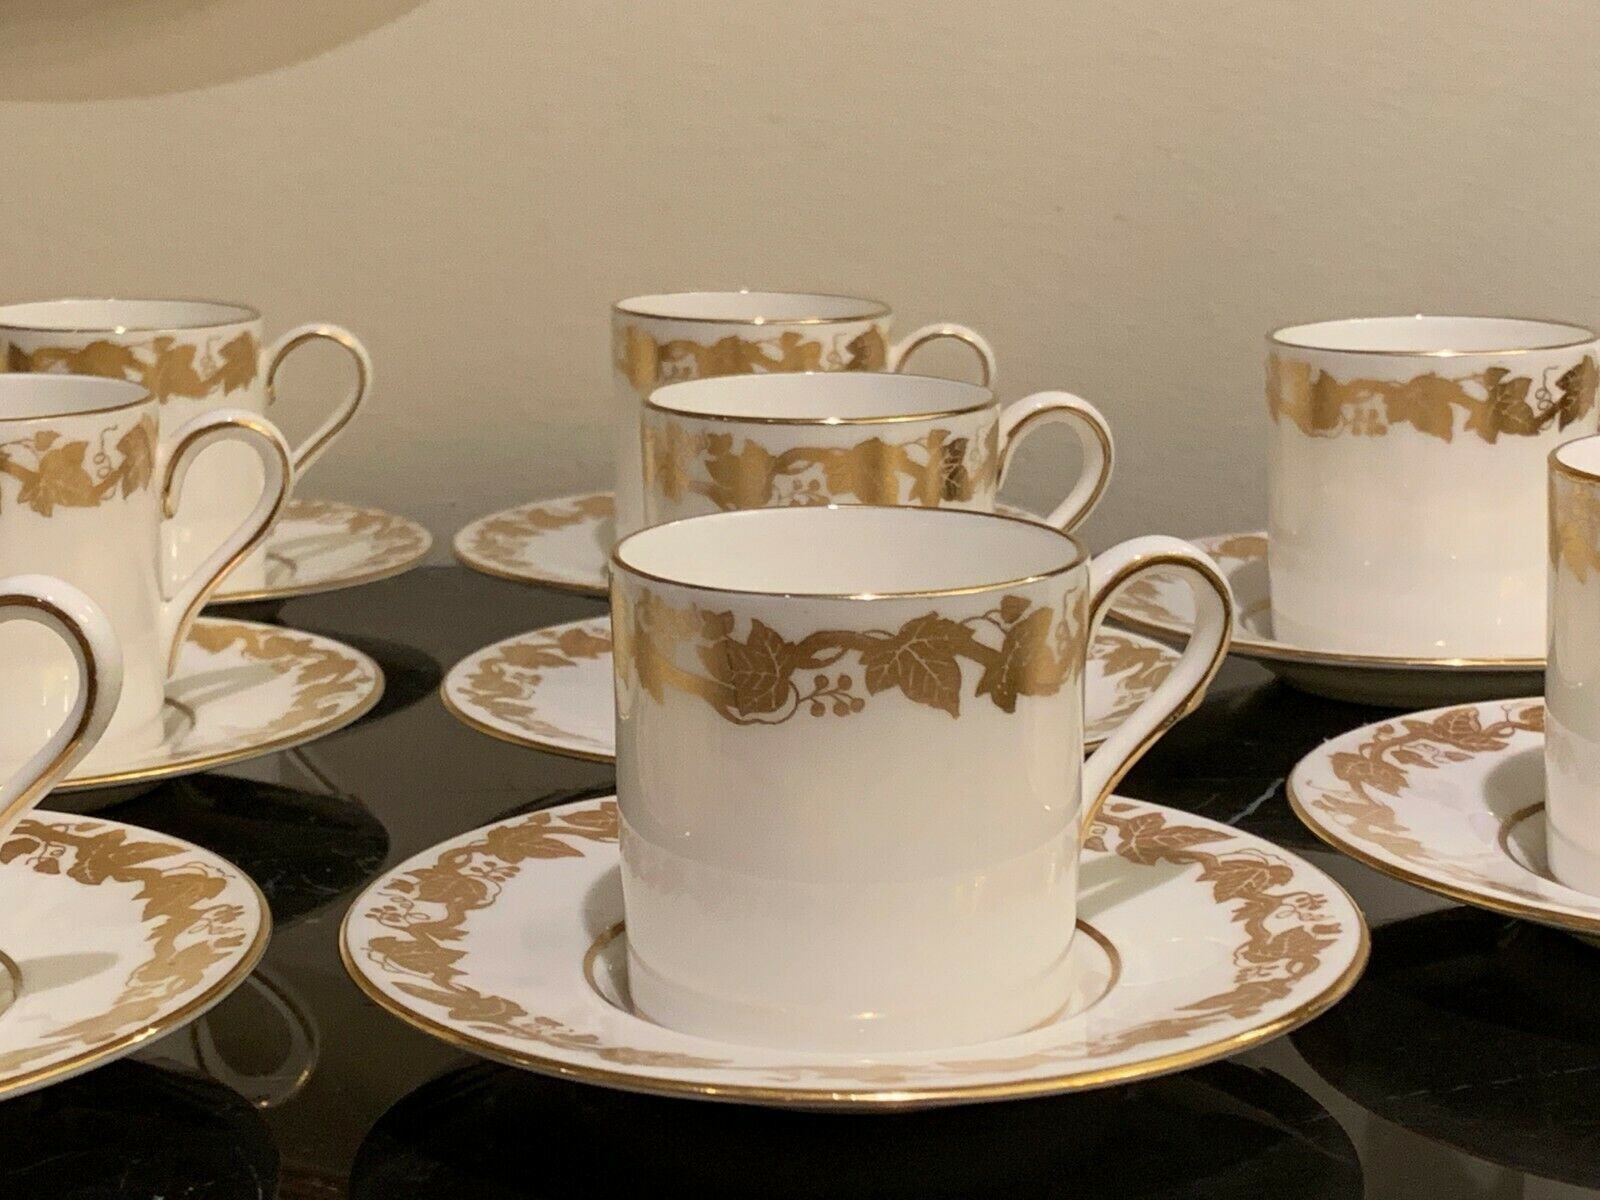 Wedgwood Whitehall White Demitasse Cups and Saucers # 4001 Set of 11